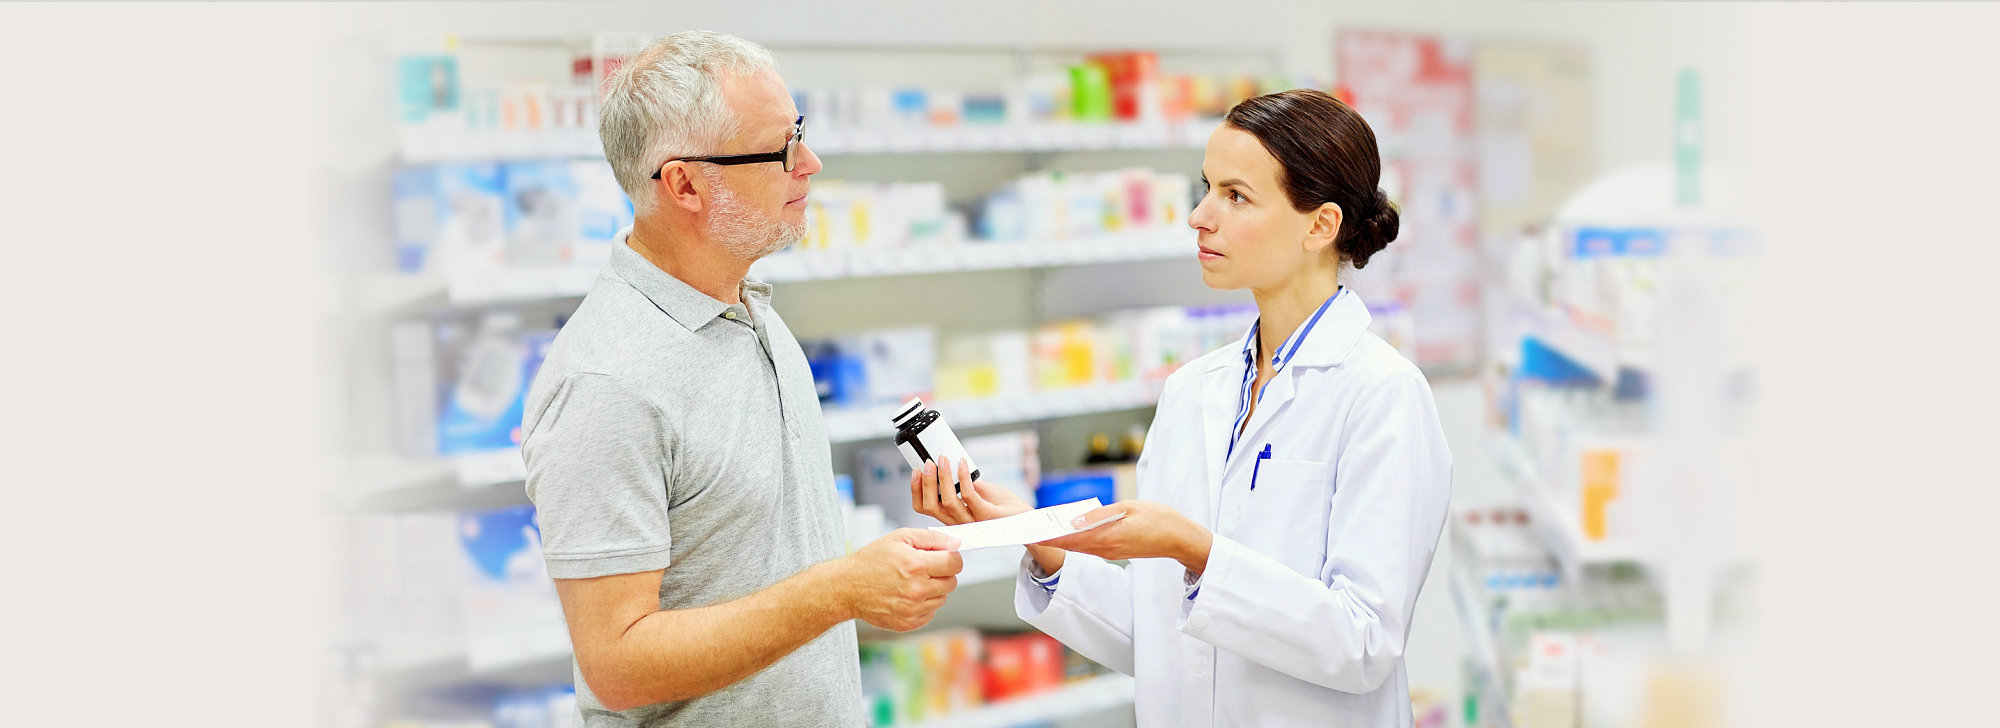 pharmacist giving medicine to her customer